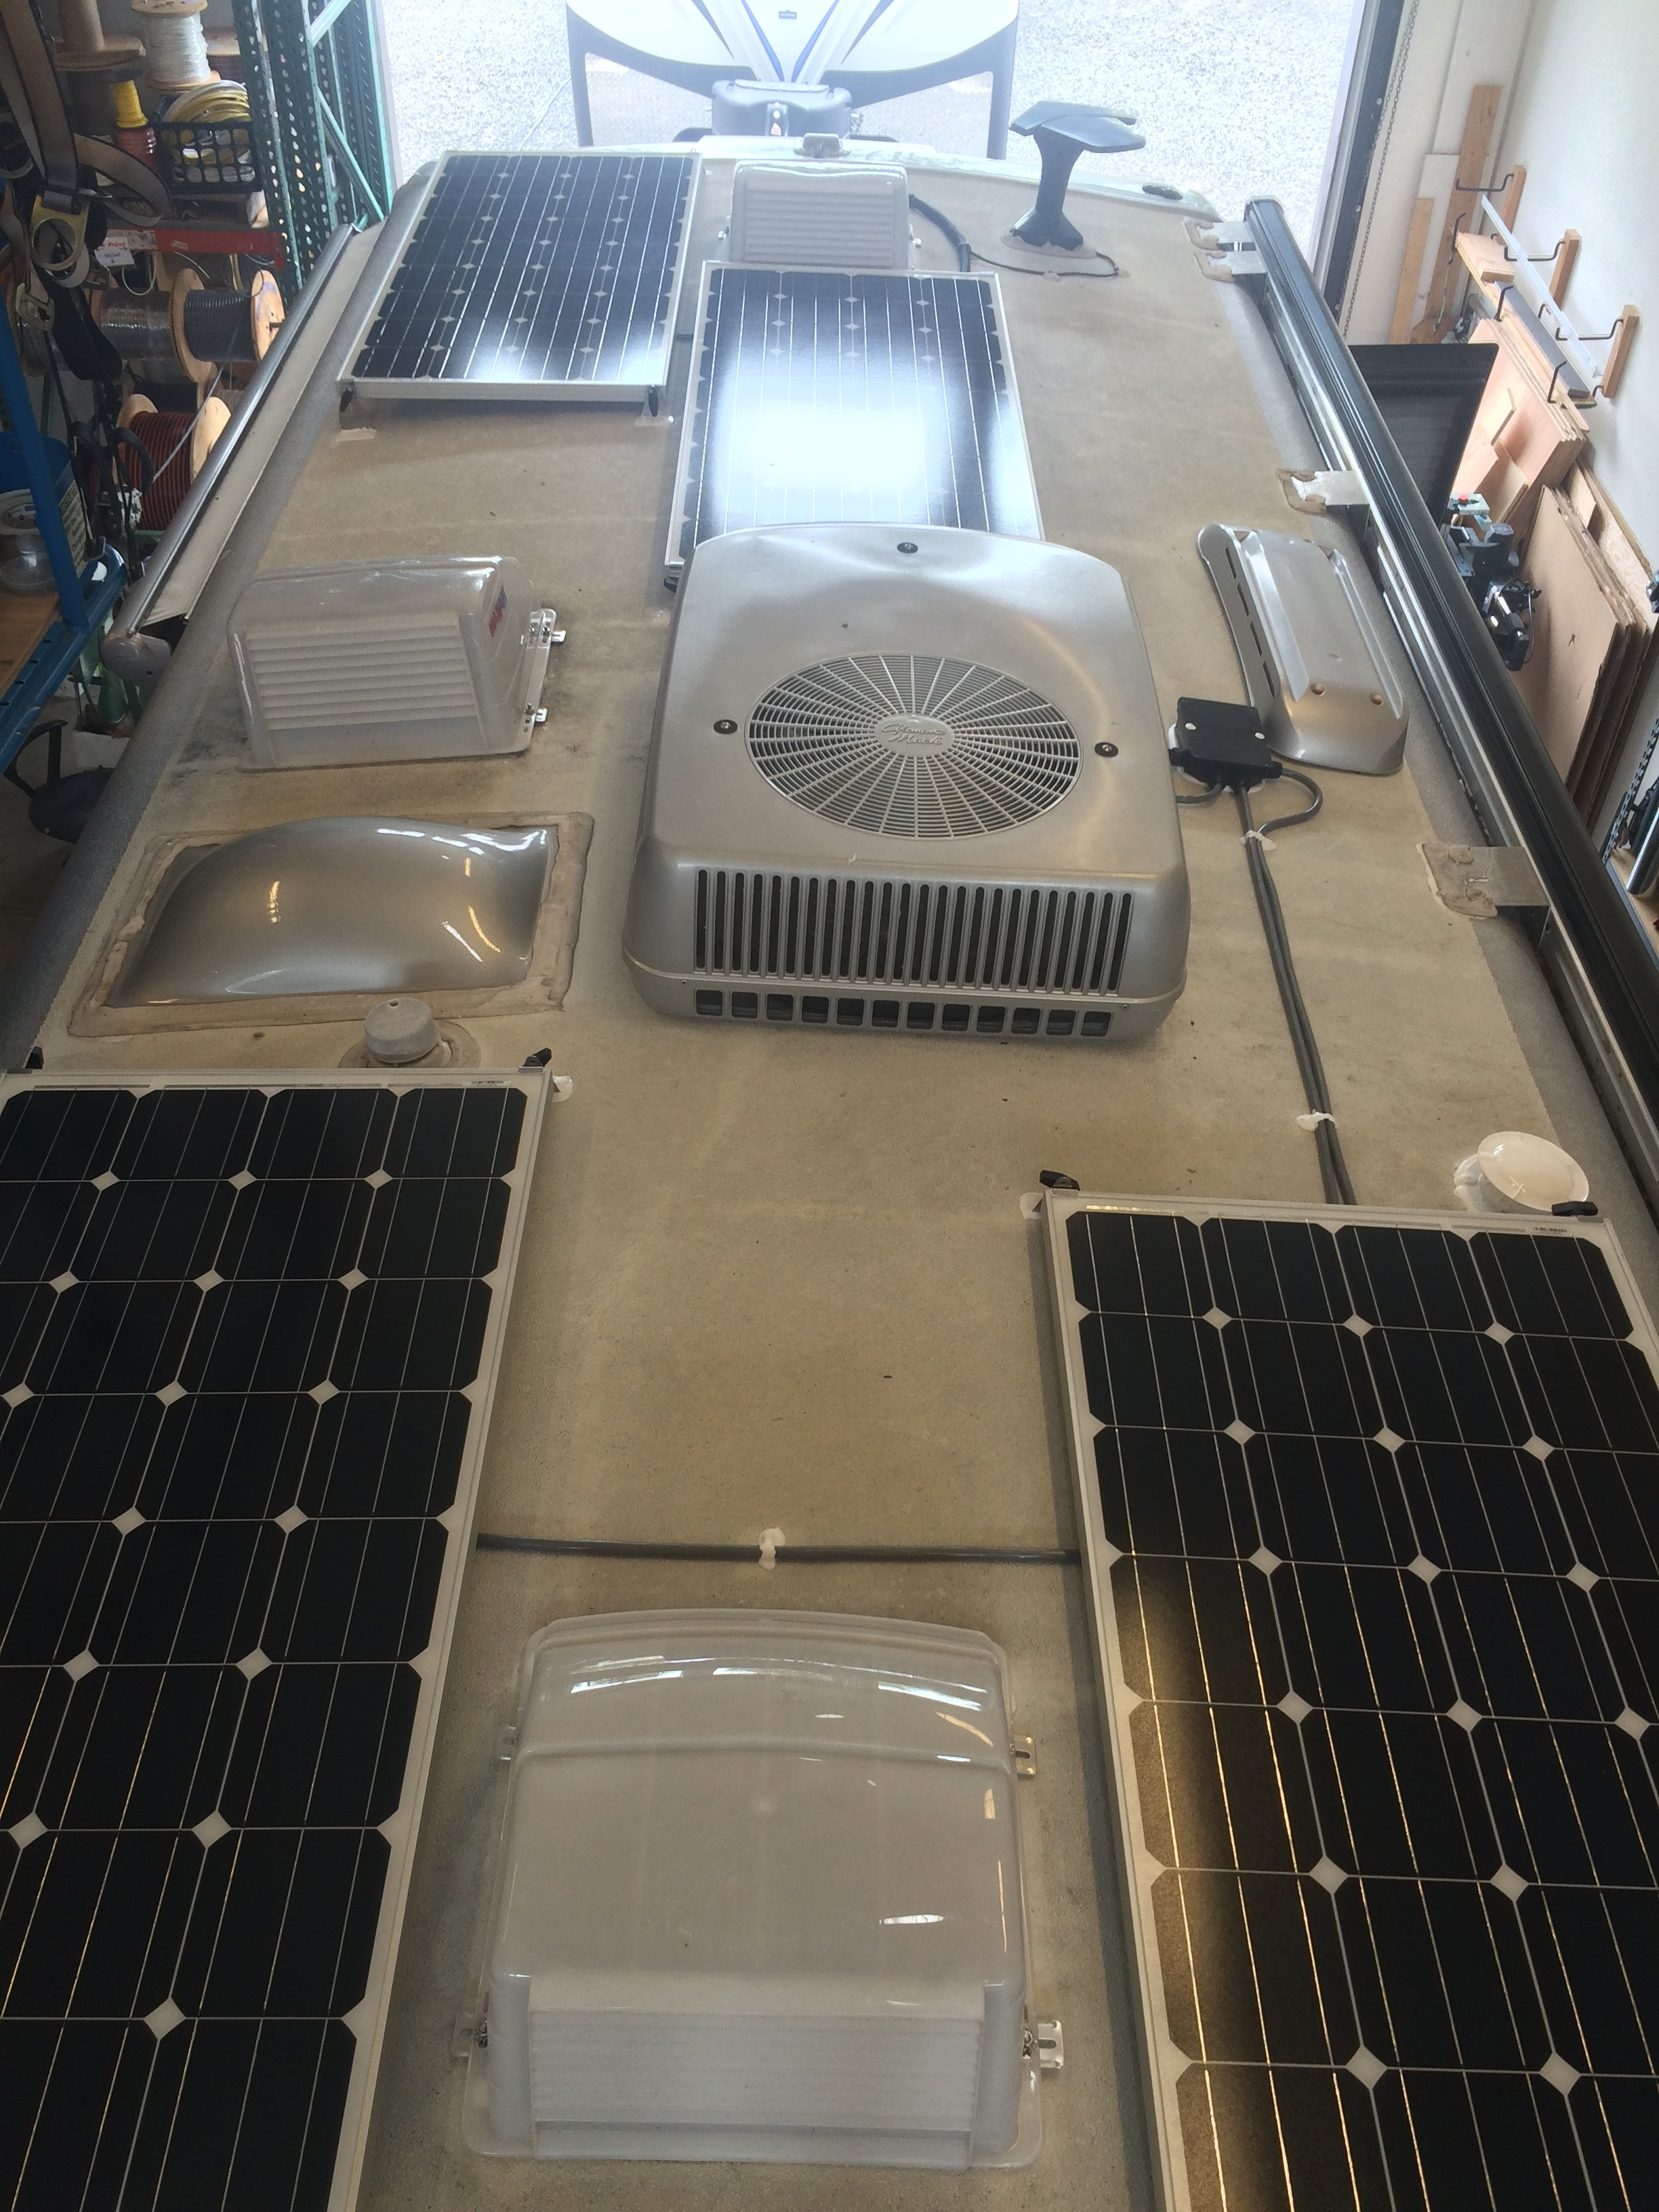 Equipment Added:  4x 160W Solar (sub 6 L-3 hole feet for 6 L-5 hole feet to accommodate curve of roof) 1x Roof C-Box 1x SunRunner Signature MPPT 40A Pro Core 2x 6V 300Ah 6CT AGM Batteries 1x Trik-L-Start 1x Raw 360 siphon sewer vent (we sell these too!)